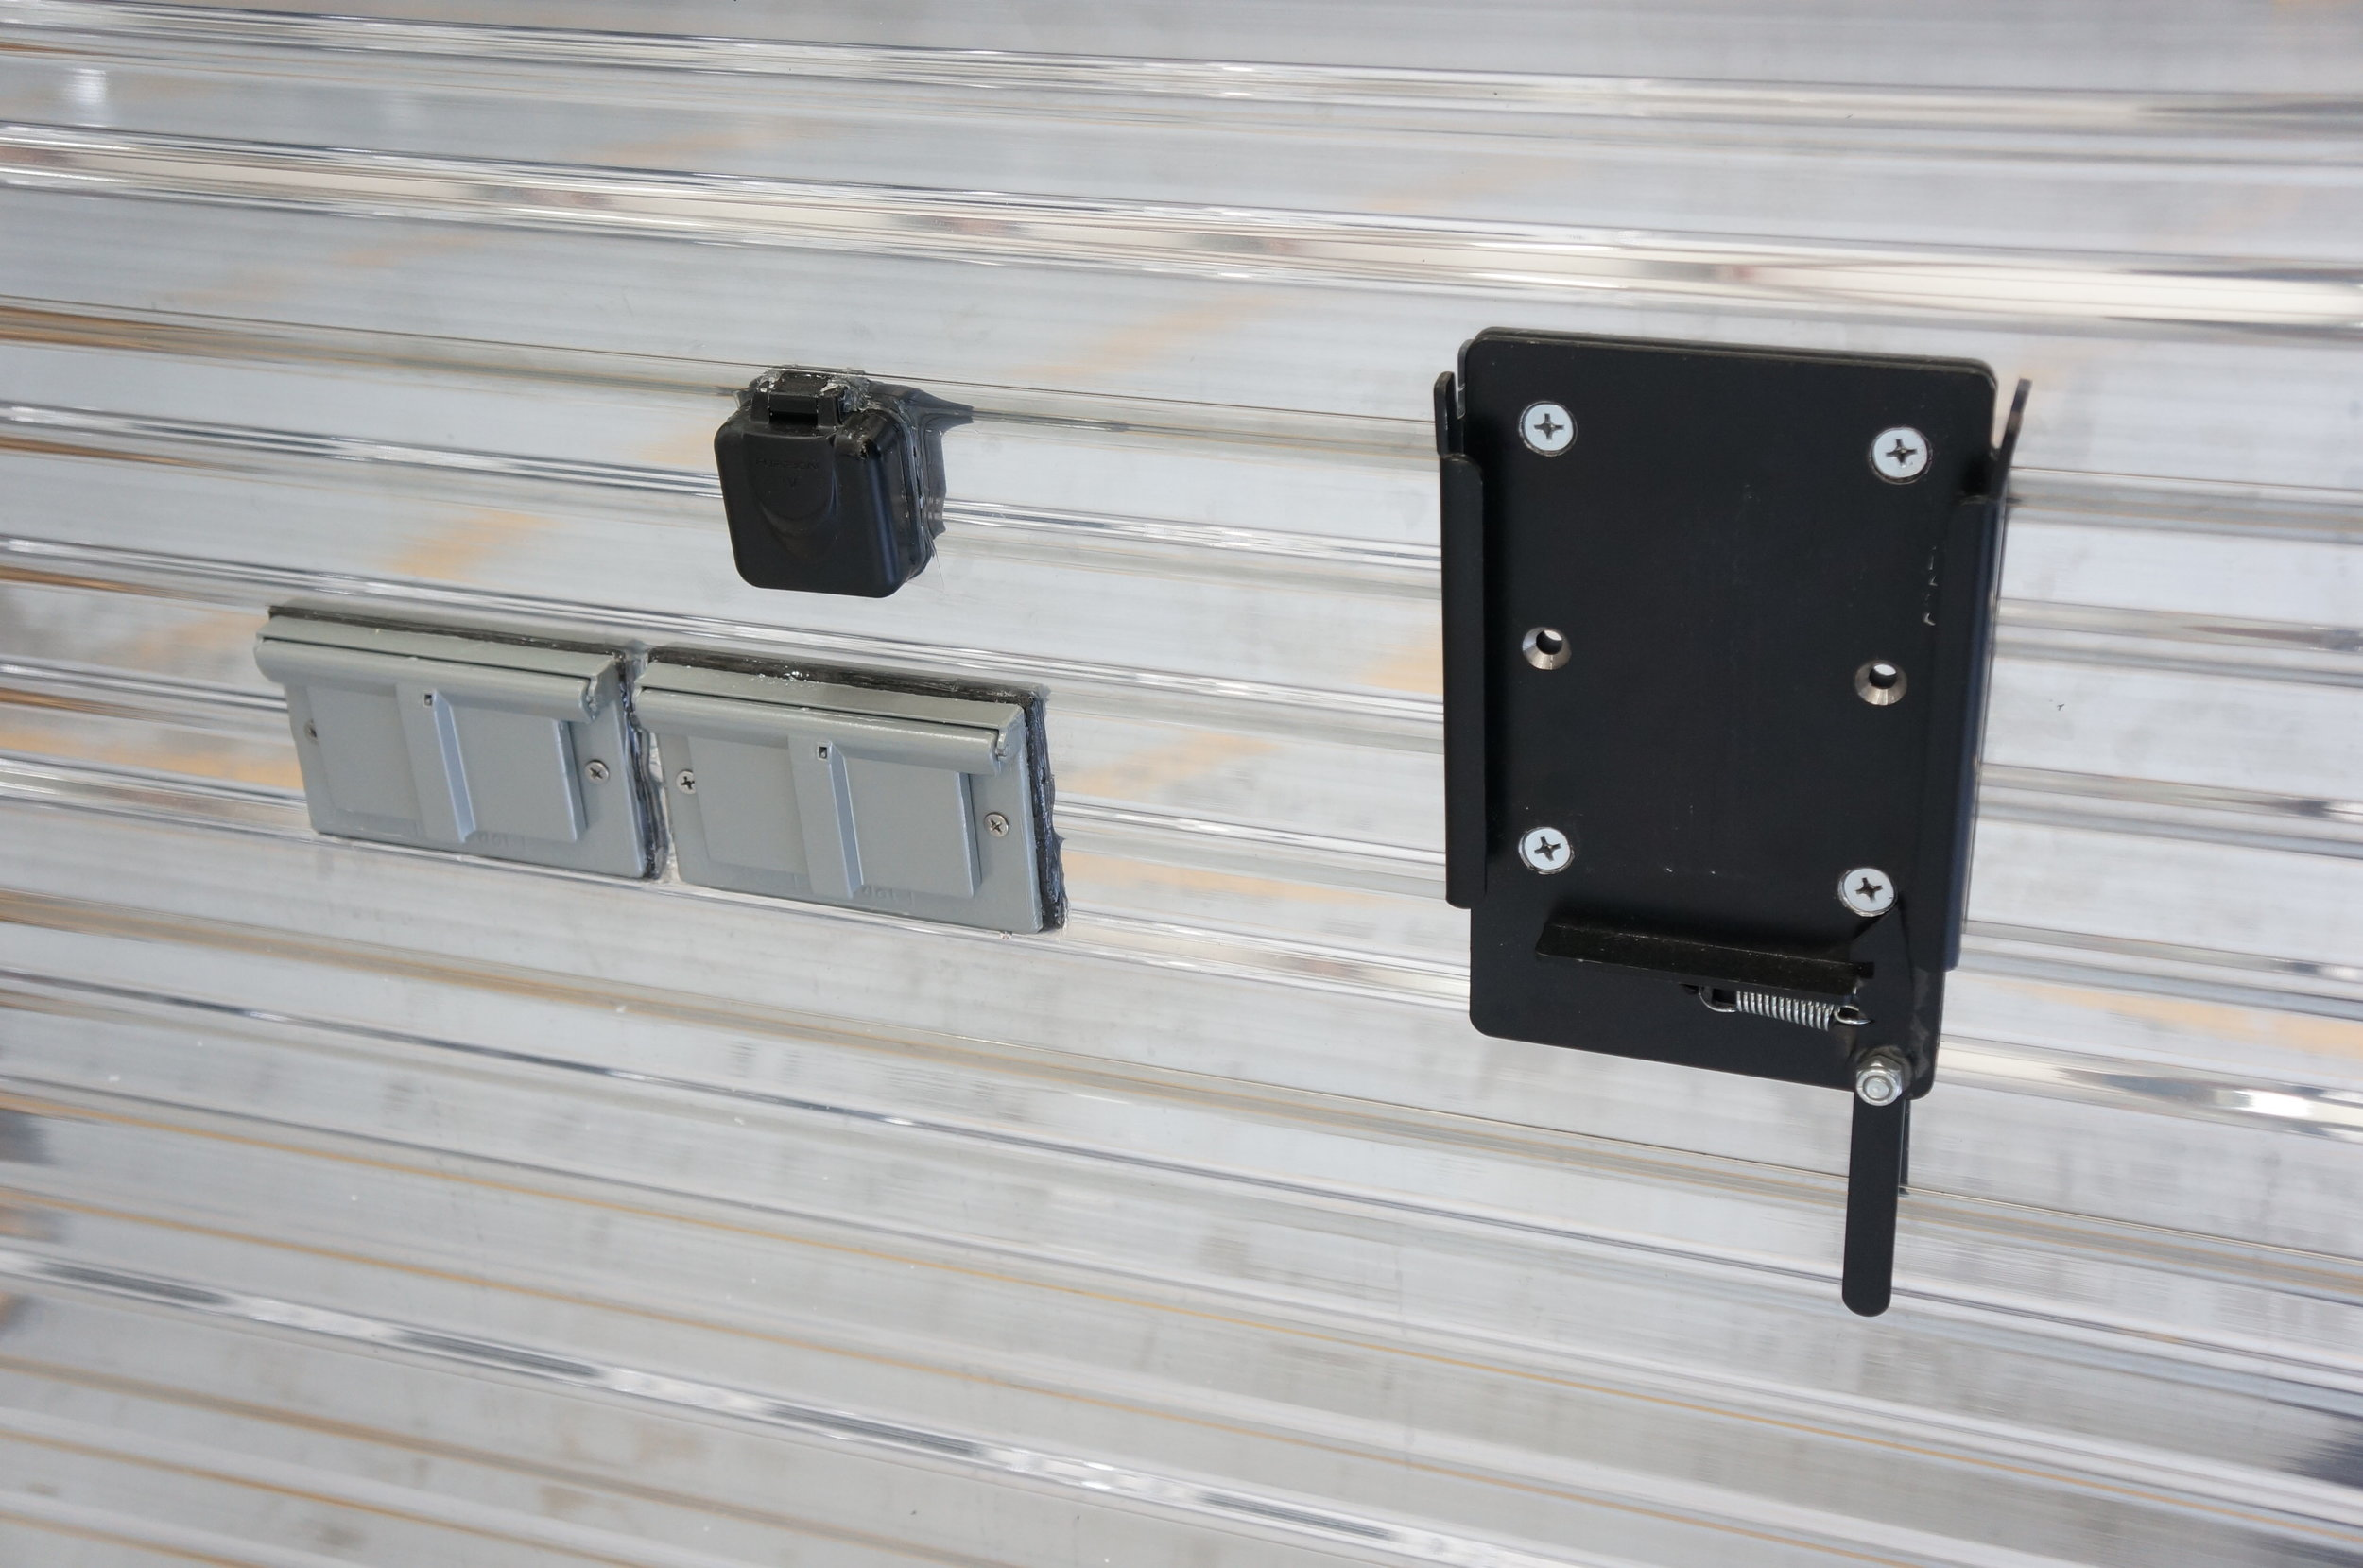 Exterior Clip-On TV Mount